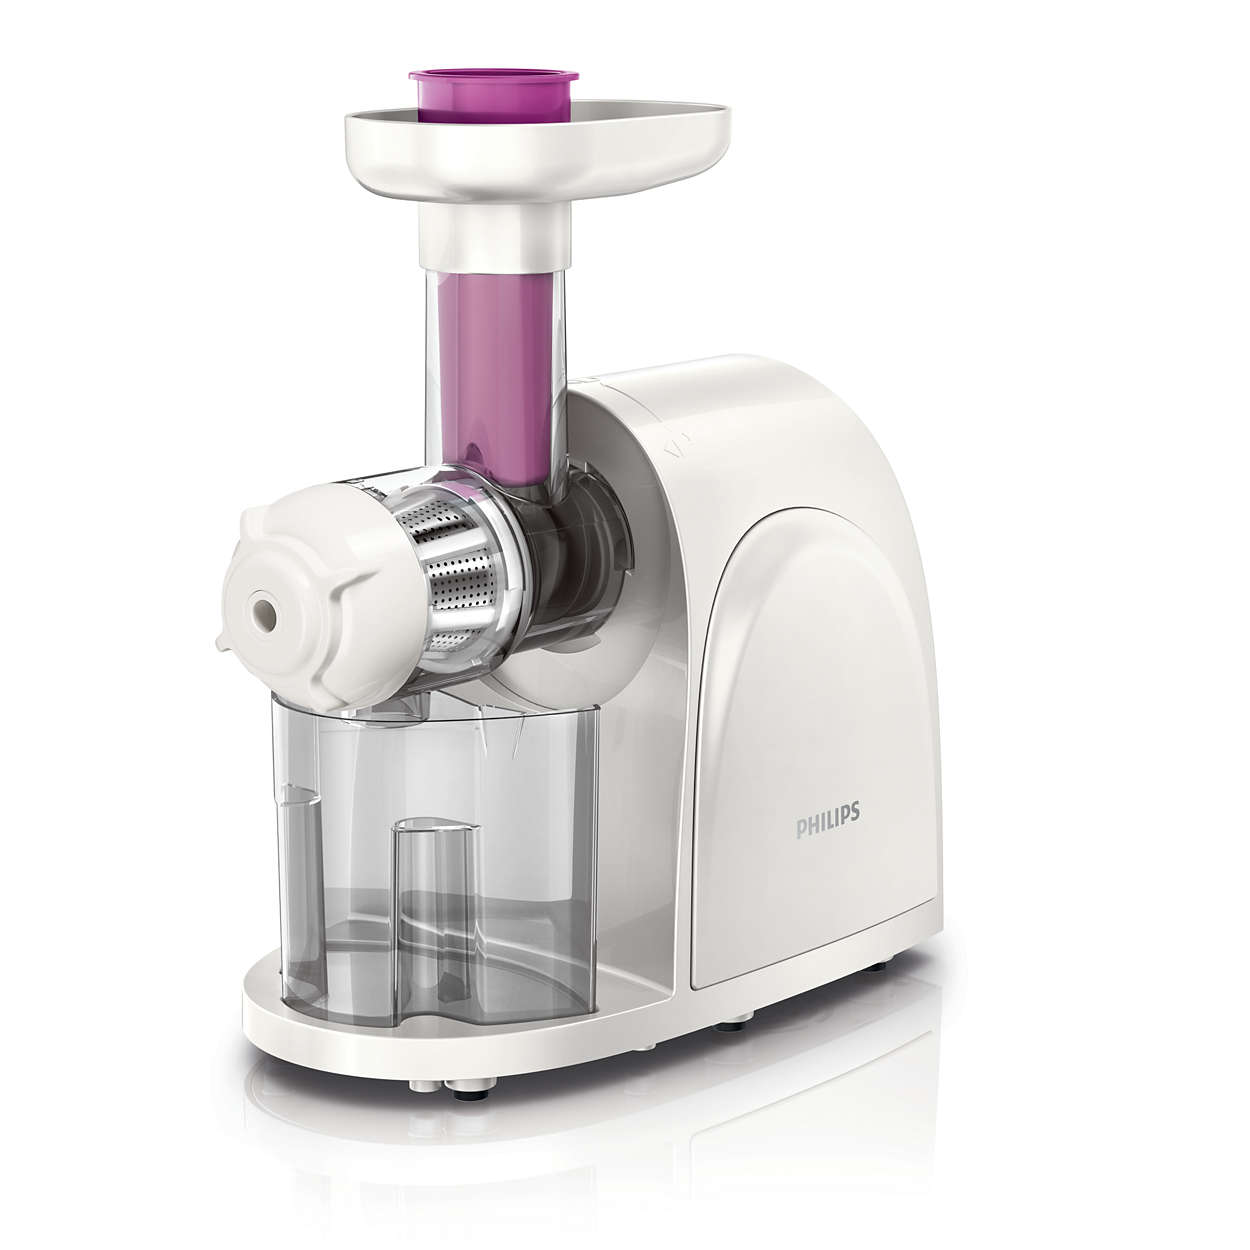 Prestige Slow Juicer With Salad Maker : viva Collection Slow juicer HR1830/03 Philips